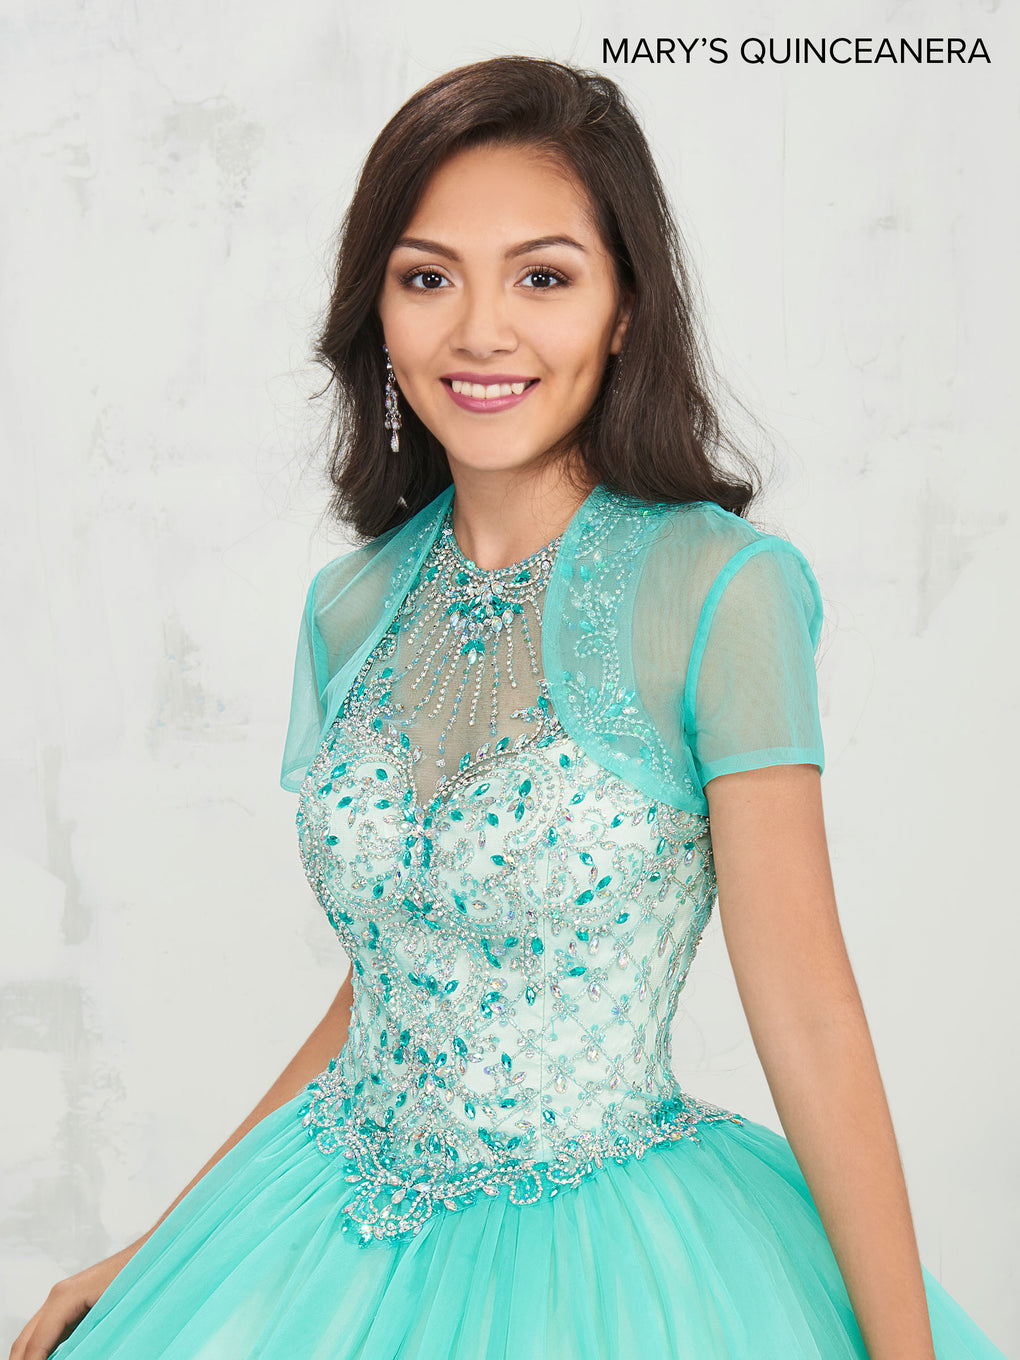 Marys Quinceanera Dresses in Bermuda/Champagne or White Color